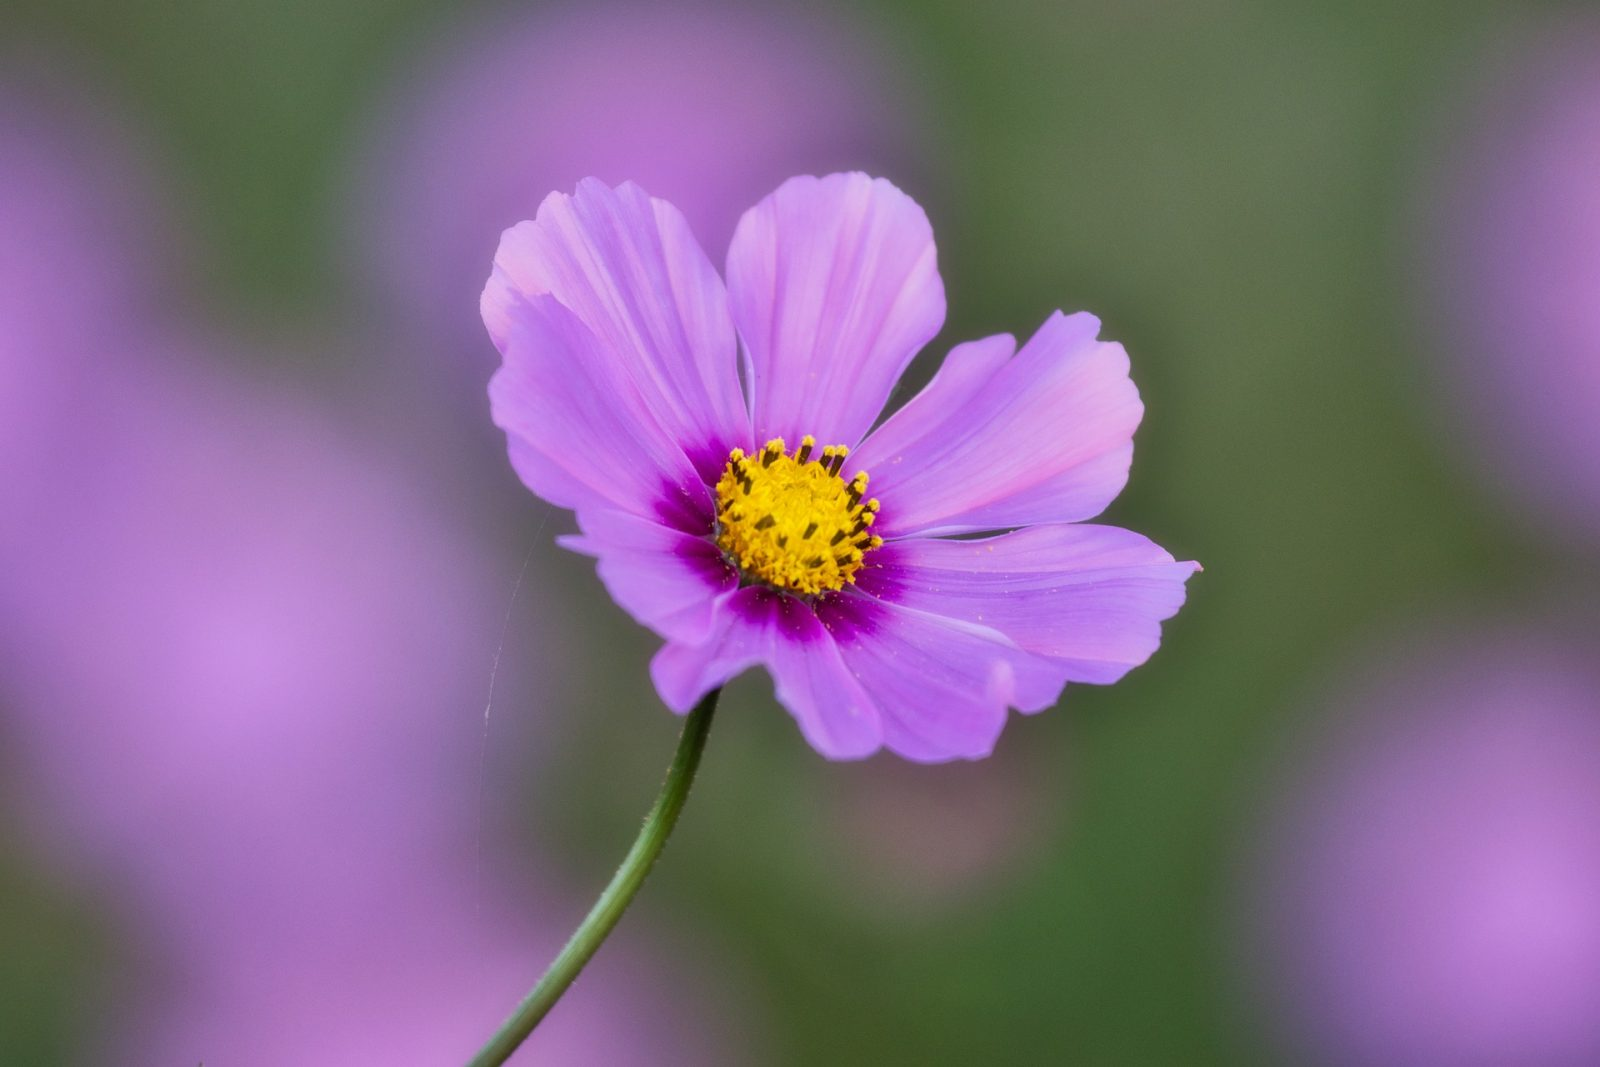 Boston Flower Show 2019: The Beauty of Balance Cosmos #BostonFlowerShow #BostonFlowerGardenShow #Spring #SpringTime #SpringFlowers #Boston